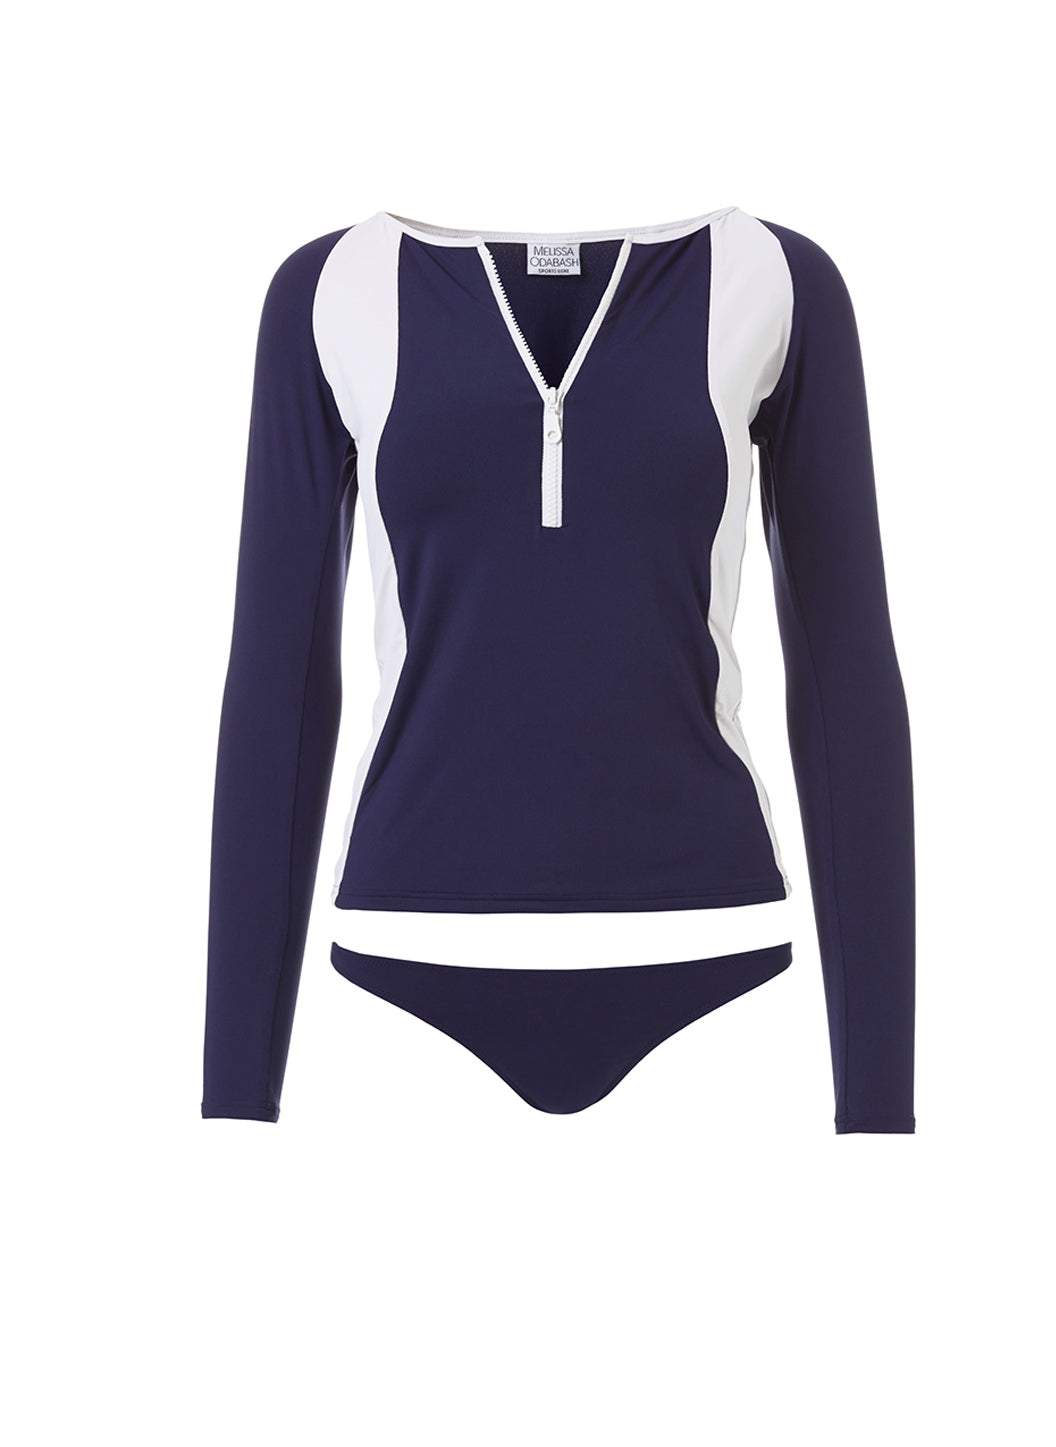 Bondi Navy White Sports Long Sleeve Rash Vest - Melissa Odabash Swimwear